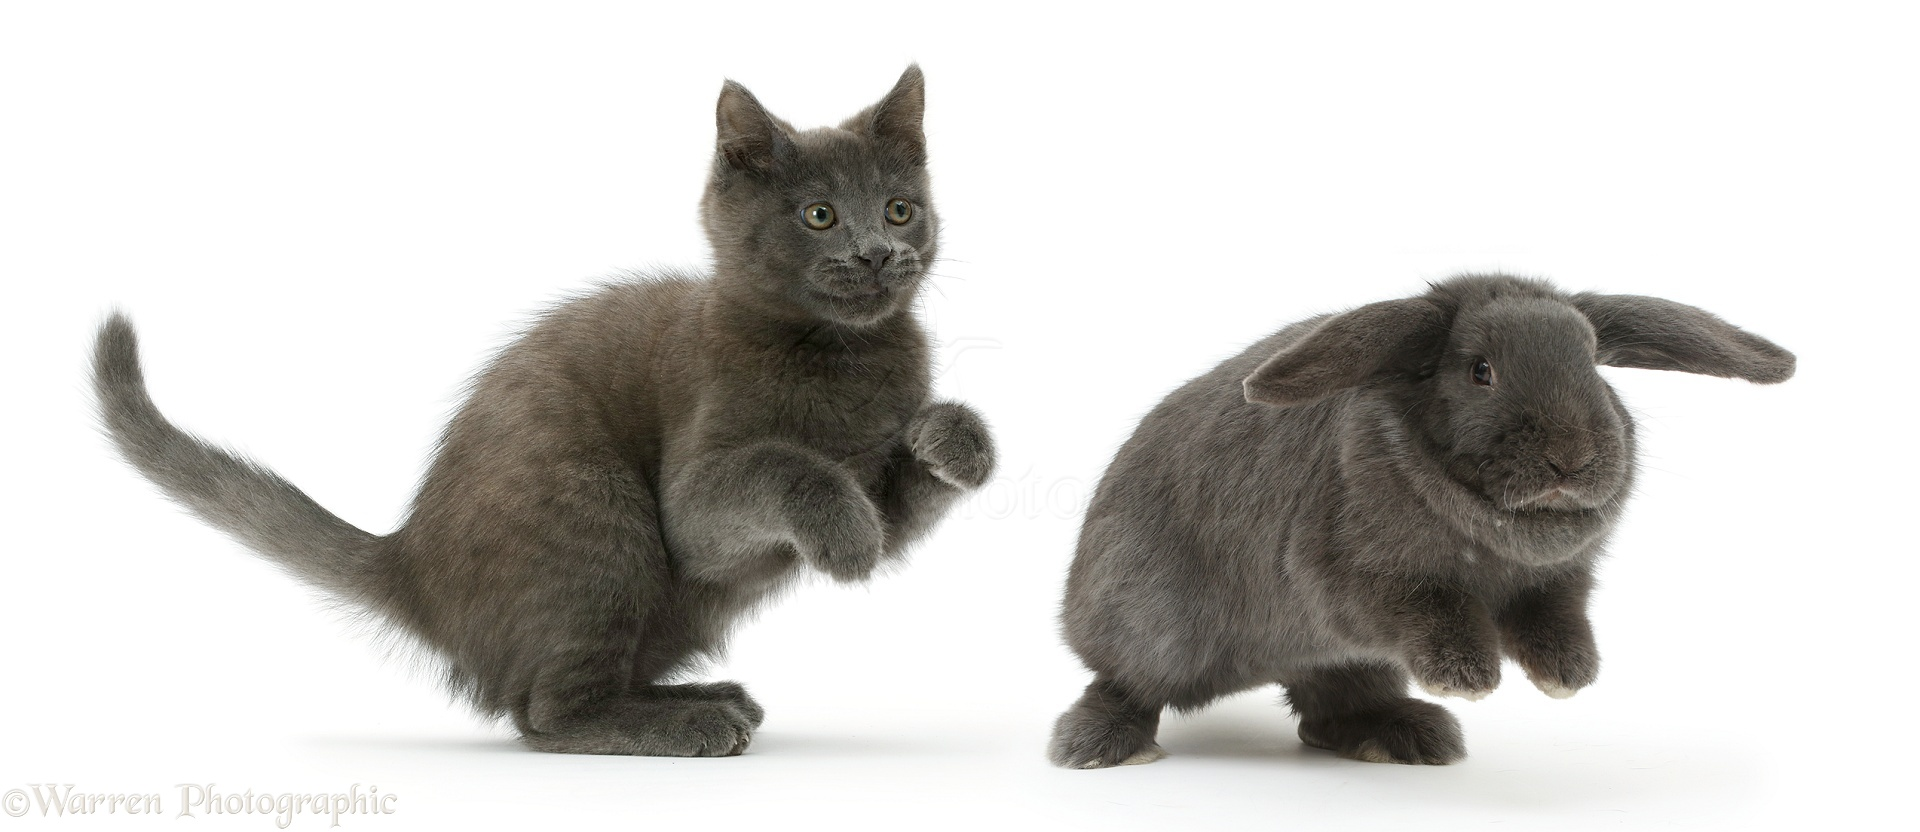 Russian White Kitten: Russian Russian Blue Kitten Chasing Blue Lop Rabbit Breed